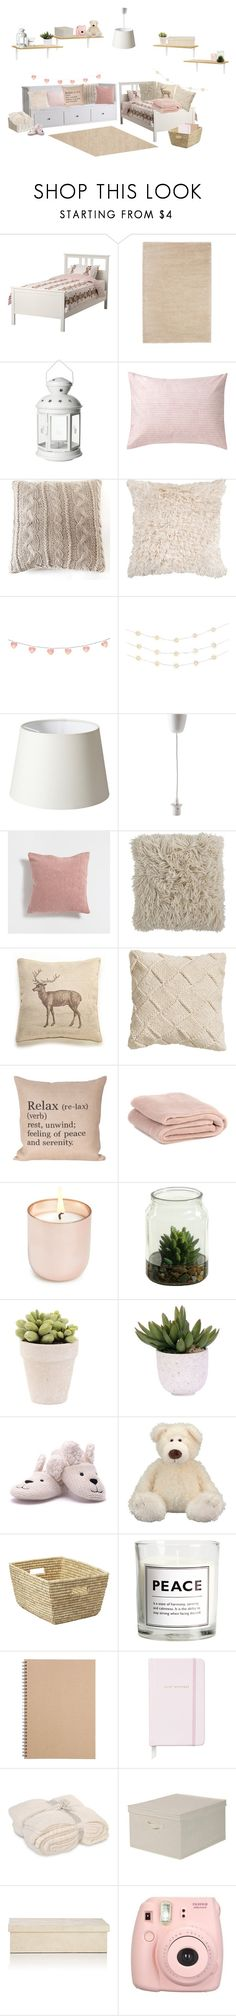 """""""Sisters' Dream Bedroom #1"""" by momockapai ❤ liked on Polyvore featuring interior, interiors, interior design, home, home decor, interior decorating, DwellStudio, Pom Pom at Home, Order Home Collection and Zara Home"""